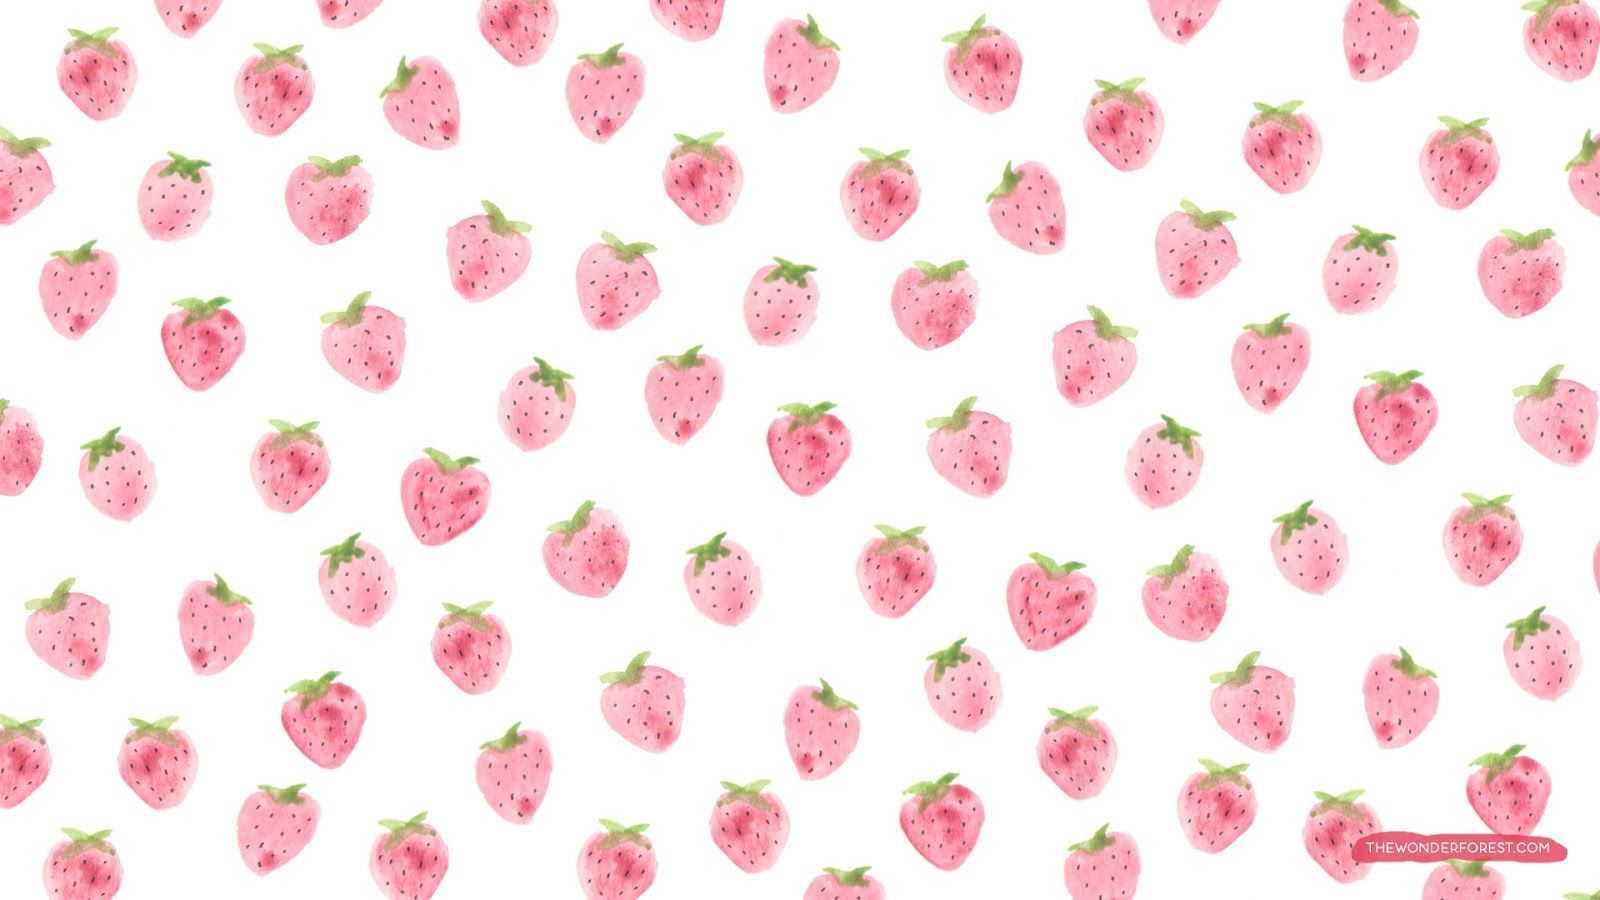 Cute Girly Backgrounds For Computers Walljdi Org